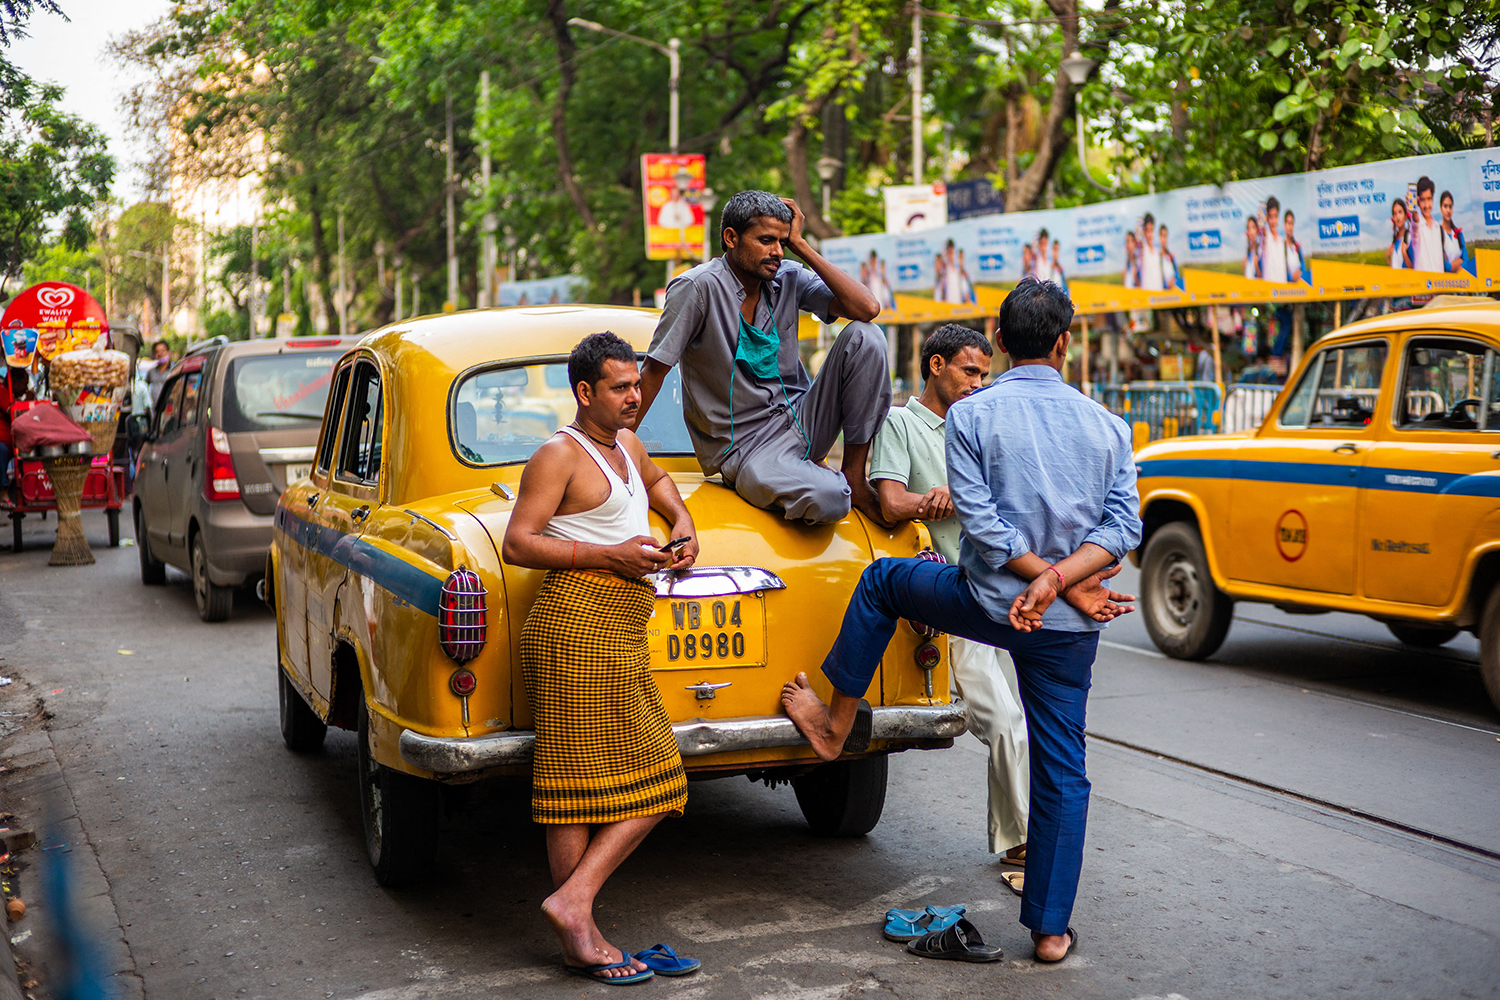 A taxi driver chats with friends along a street in Kolkata, India, on April 5. JEWEL SAMAD/AFP via Getty Images